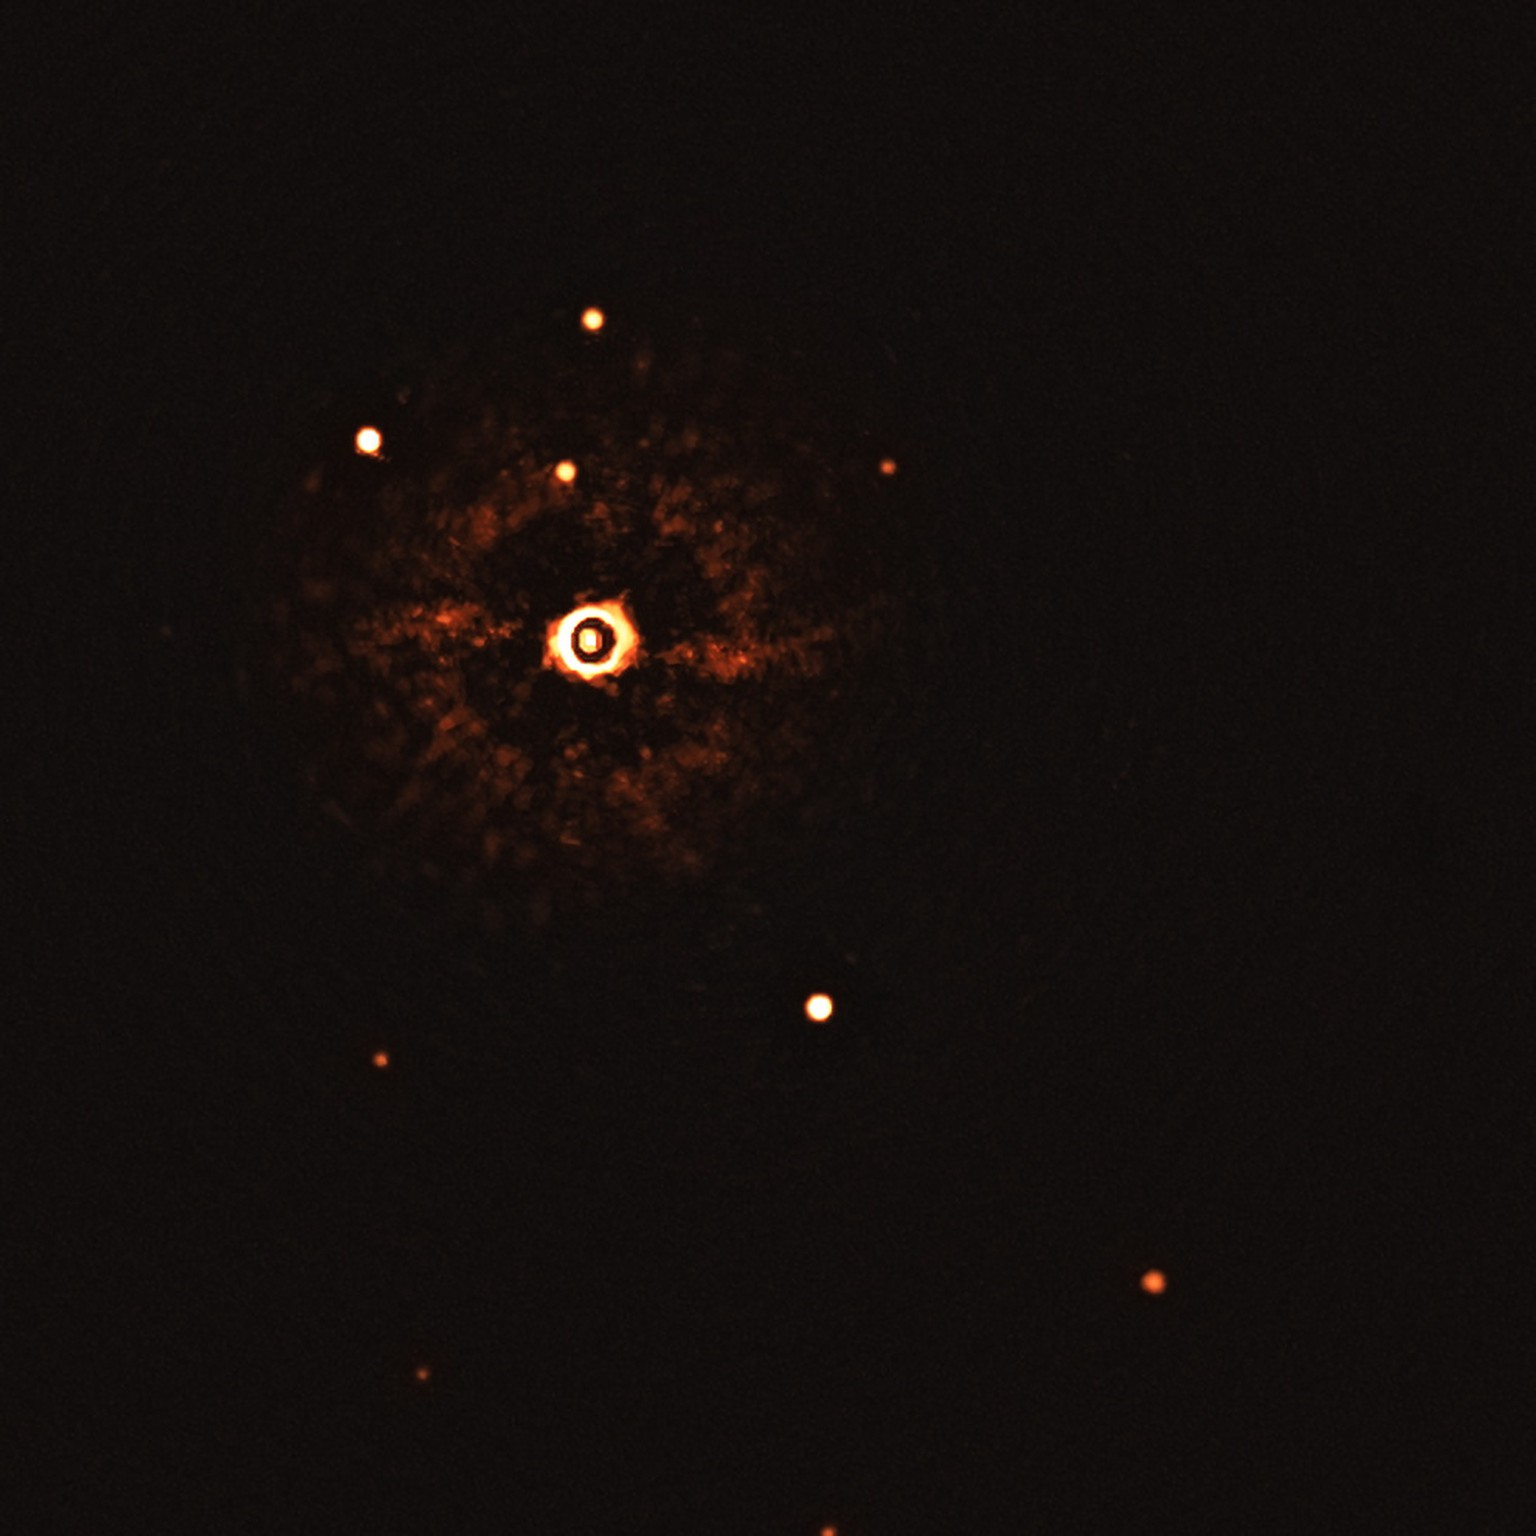 epa08560401 An undated handout photo made available by the European Southern Observatory (ESO) shows star TYC 8998-760-1 accompanied by two giant exoplanets, TYC 8998-760-1b and TYC 8998-760-1c in the image captured by the SPHERE instrument on ESO?s Very Large Telescope (issued 22 July 2020). This is the first time astronomers have directly observed more than one planet orbiting a star similar to the Sun. The image was captured by blocking the light from the young, Sun-like star (on the top left corner) using a coronagraph, which allows for the fainter planets to be detected. The bright and dark rings we see on the star?s image are optical artefacts. The two planets are visible as two bright dots in the centre and bottom right of the frame.  EPA/ESO/Bohn et al. HANDOUT  HANDOUT EDITORIAL USE ONLY/NO SALES